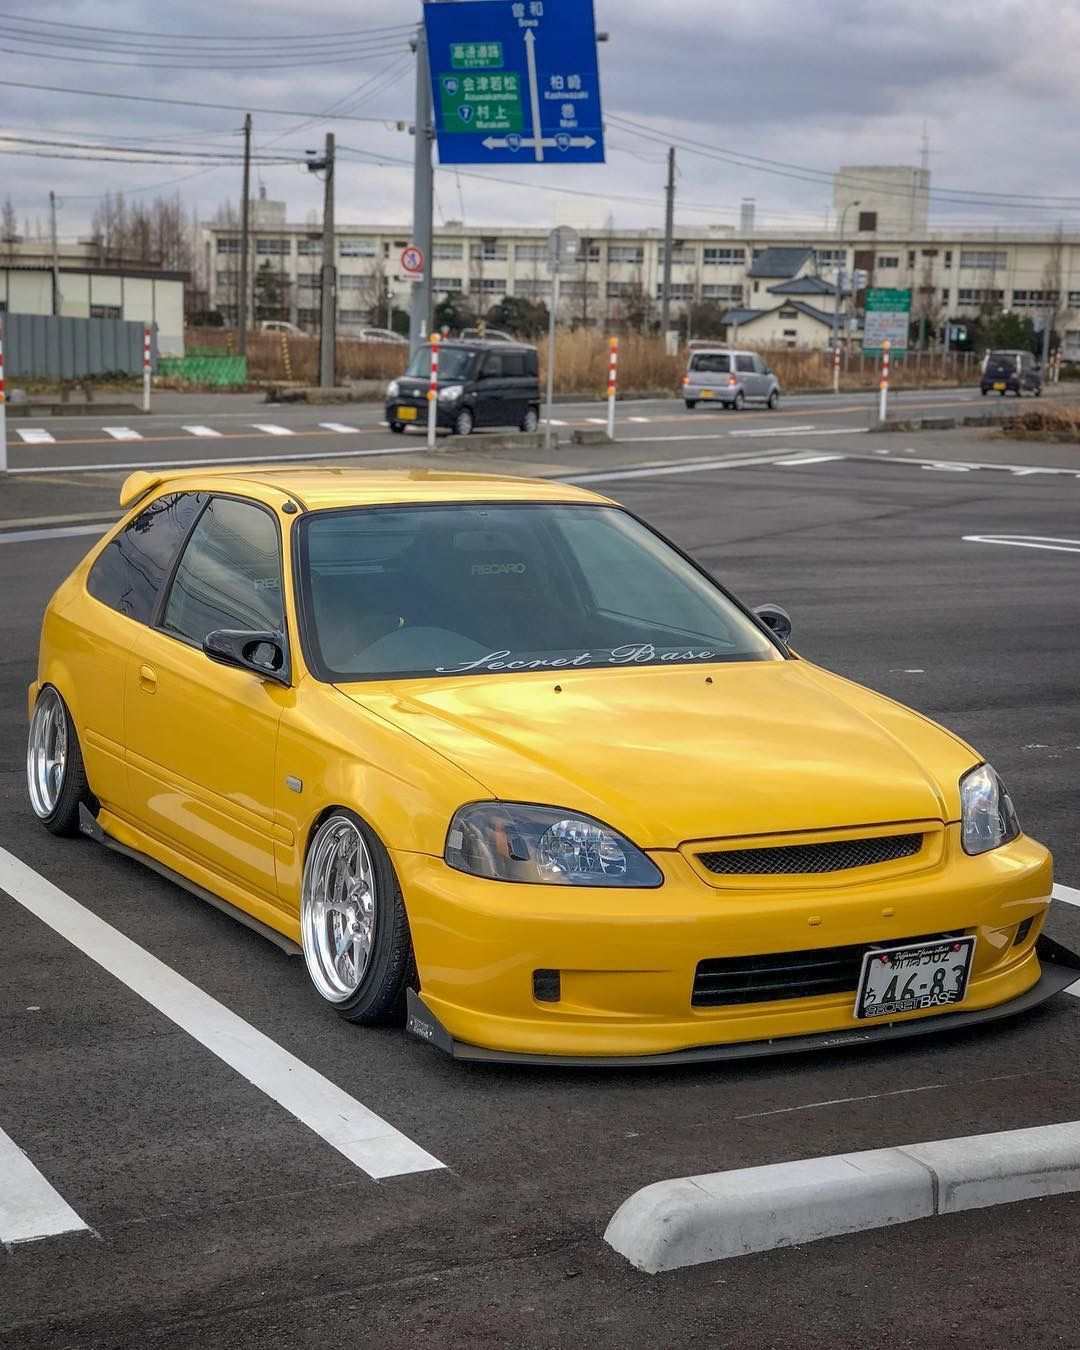 yellow ek hatchback 98 civic honda honda civic honda rh pinterest com